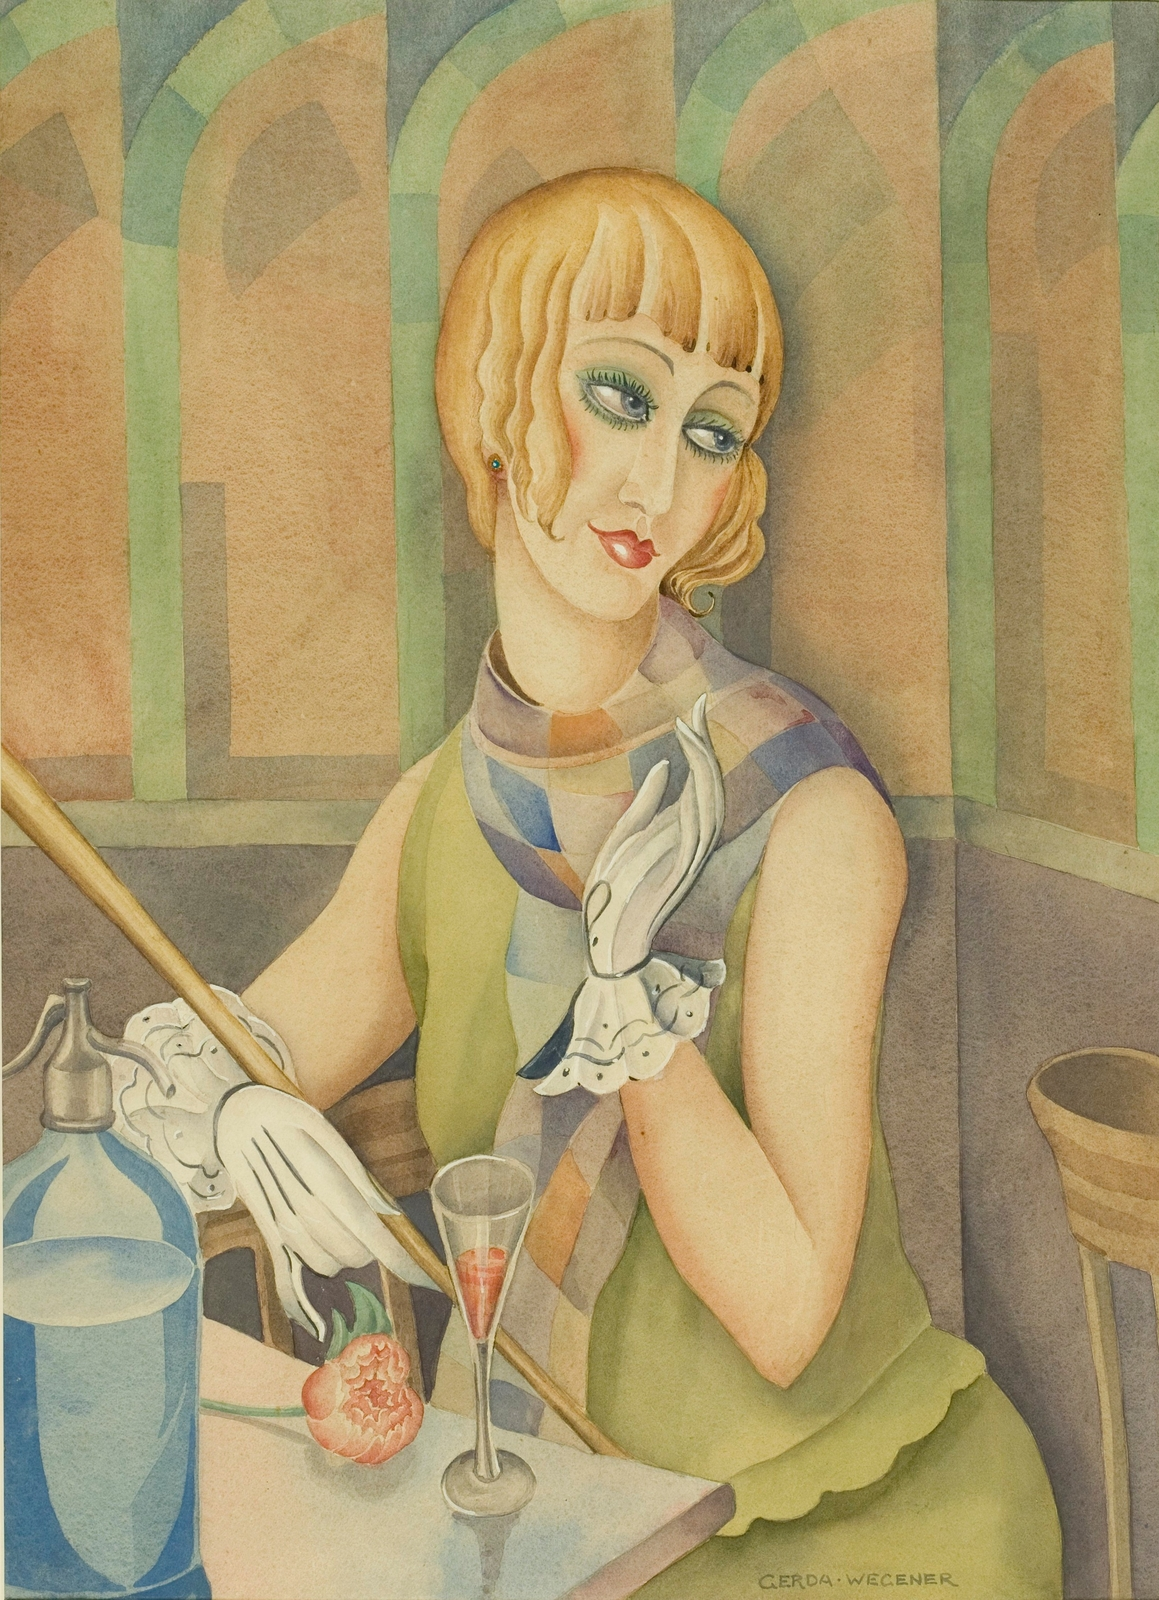 Gerda Gottlieb and her unusual marriage Wegener, Gerda, Gerda, her, Einar, Elbe, moved, Gottlieb, change